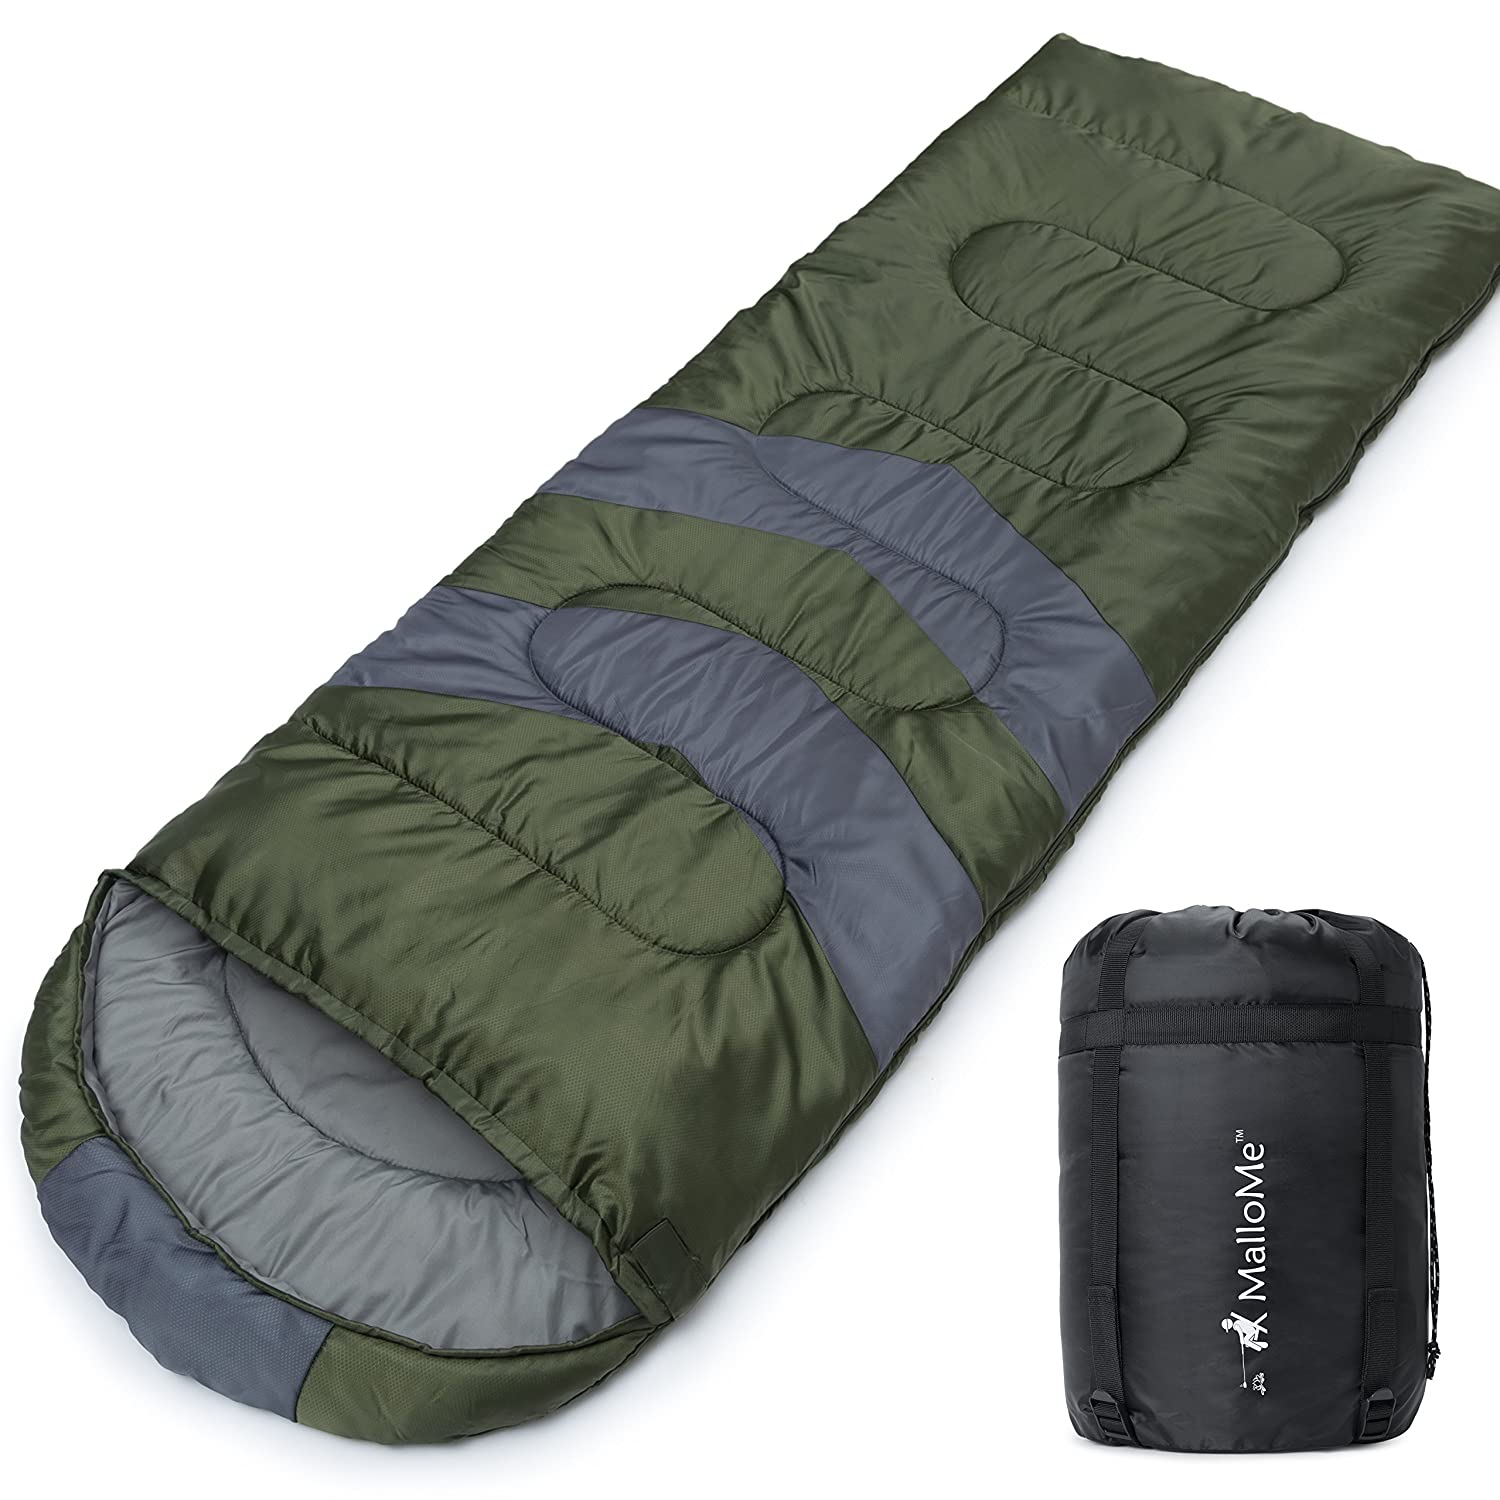 MalloMe Camping Sleeping Bag O...